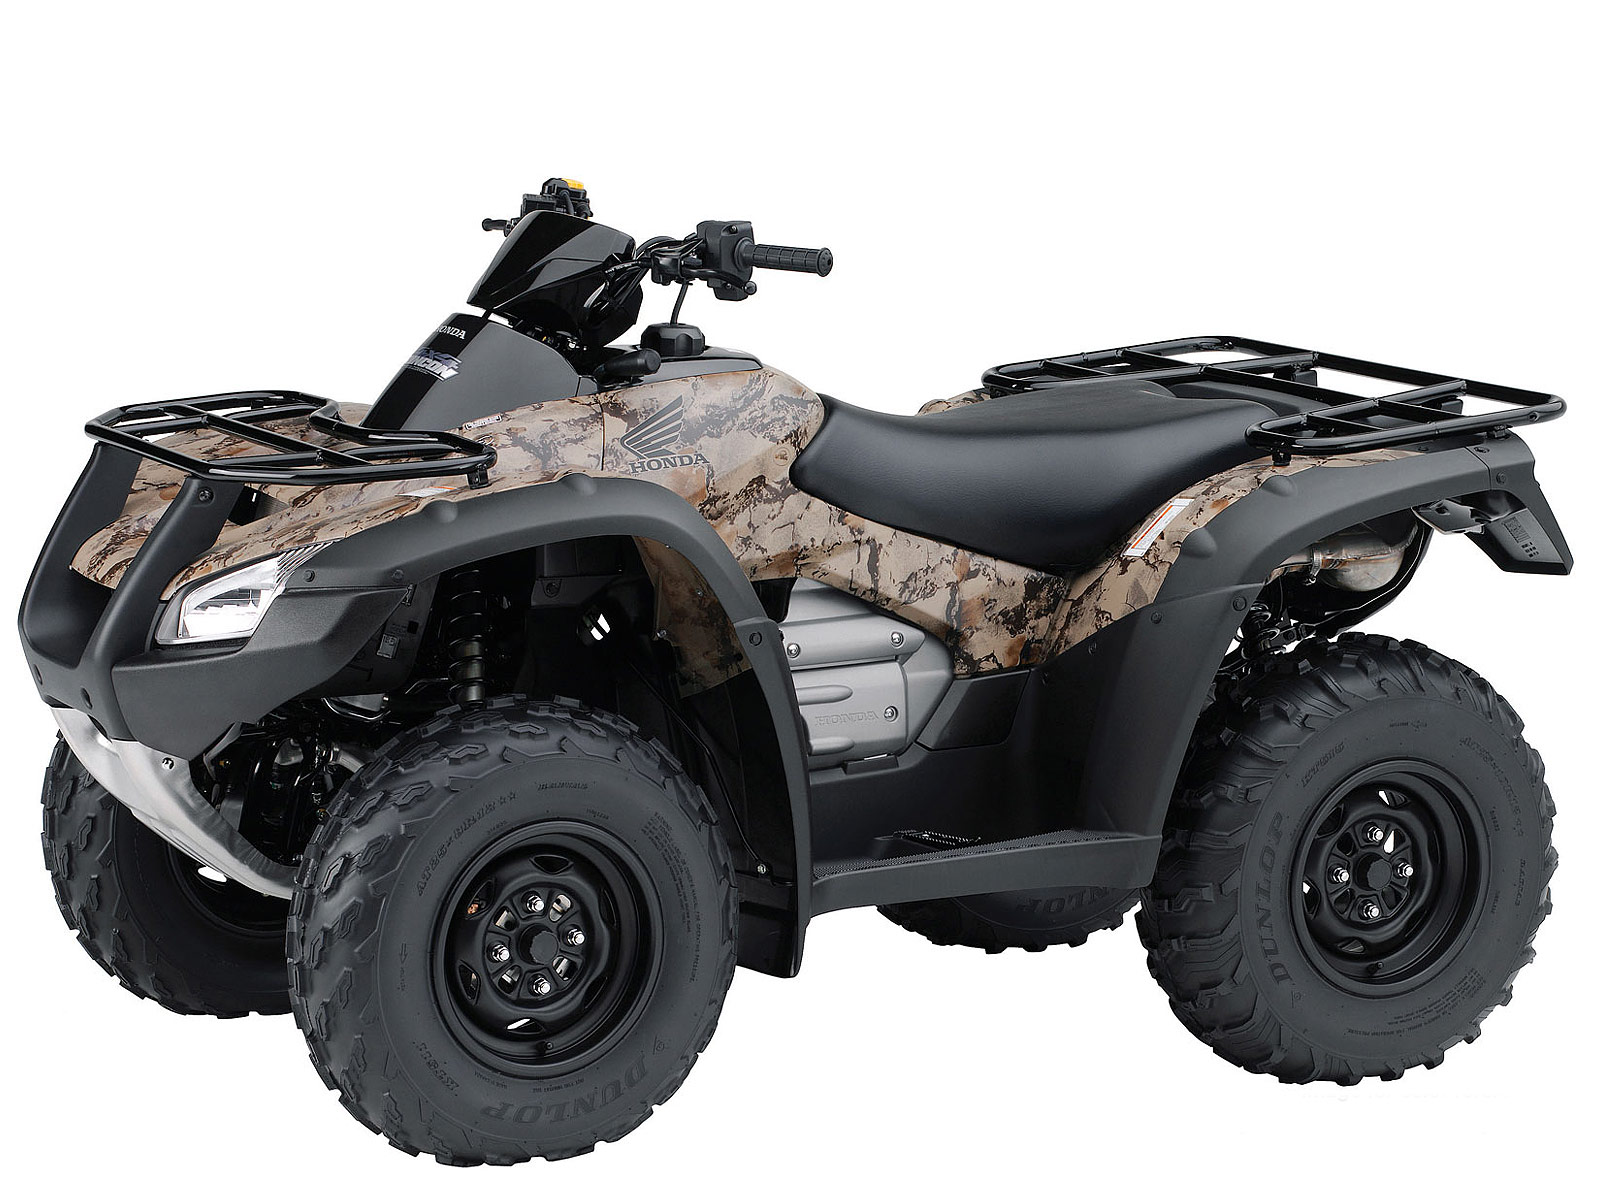 2011 fourtrax rincon trx680fa honda atv pictures and specs. Black Bedroom Furniture Sets. Home Design Ideas